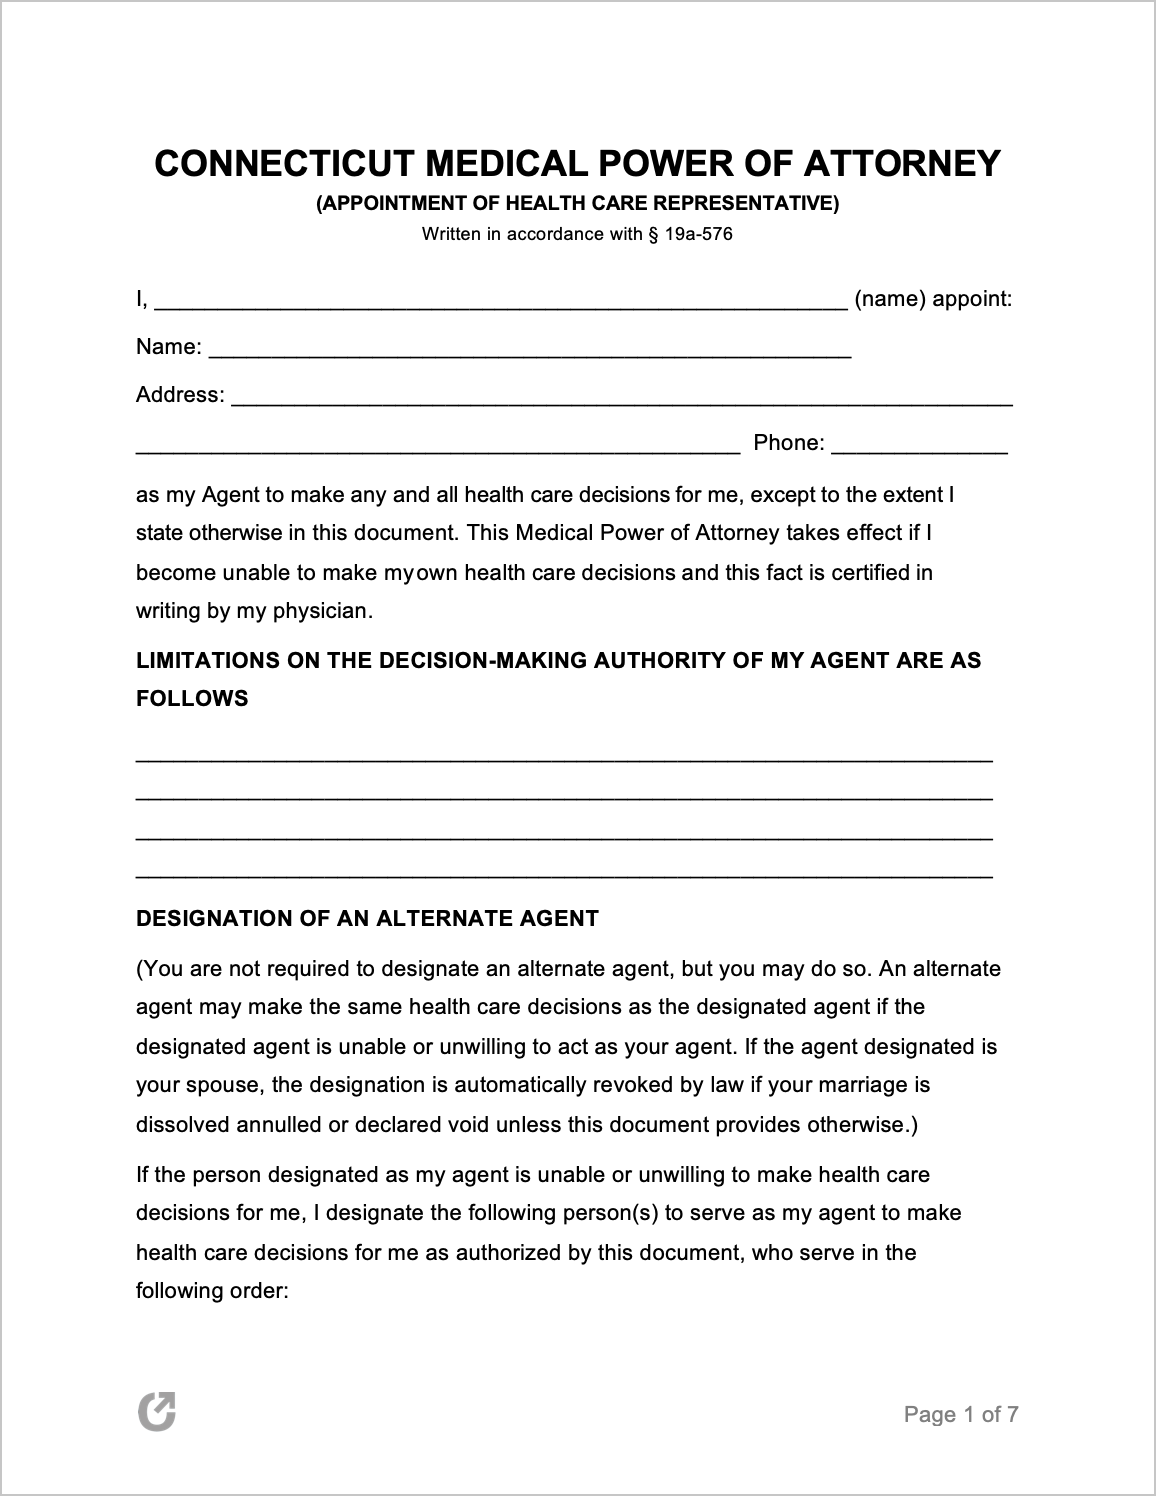 Free Connecticut Medical Power Of Attorney Form PDF WORD